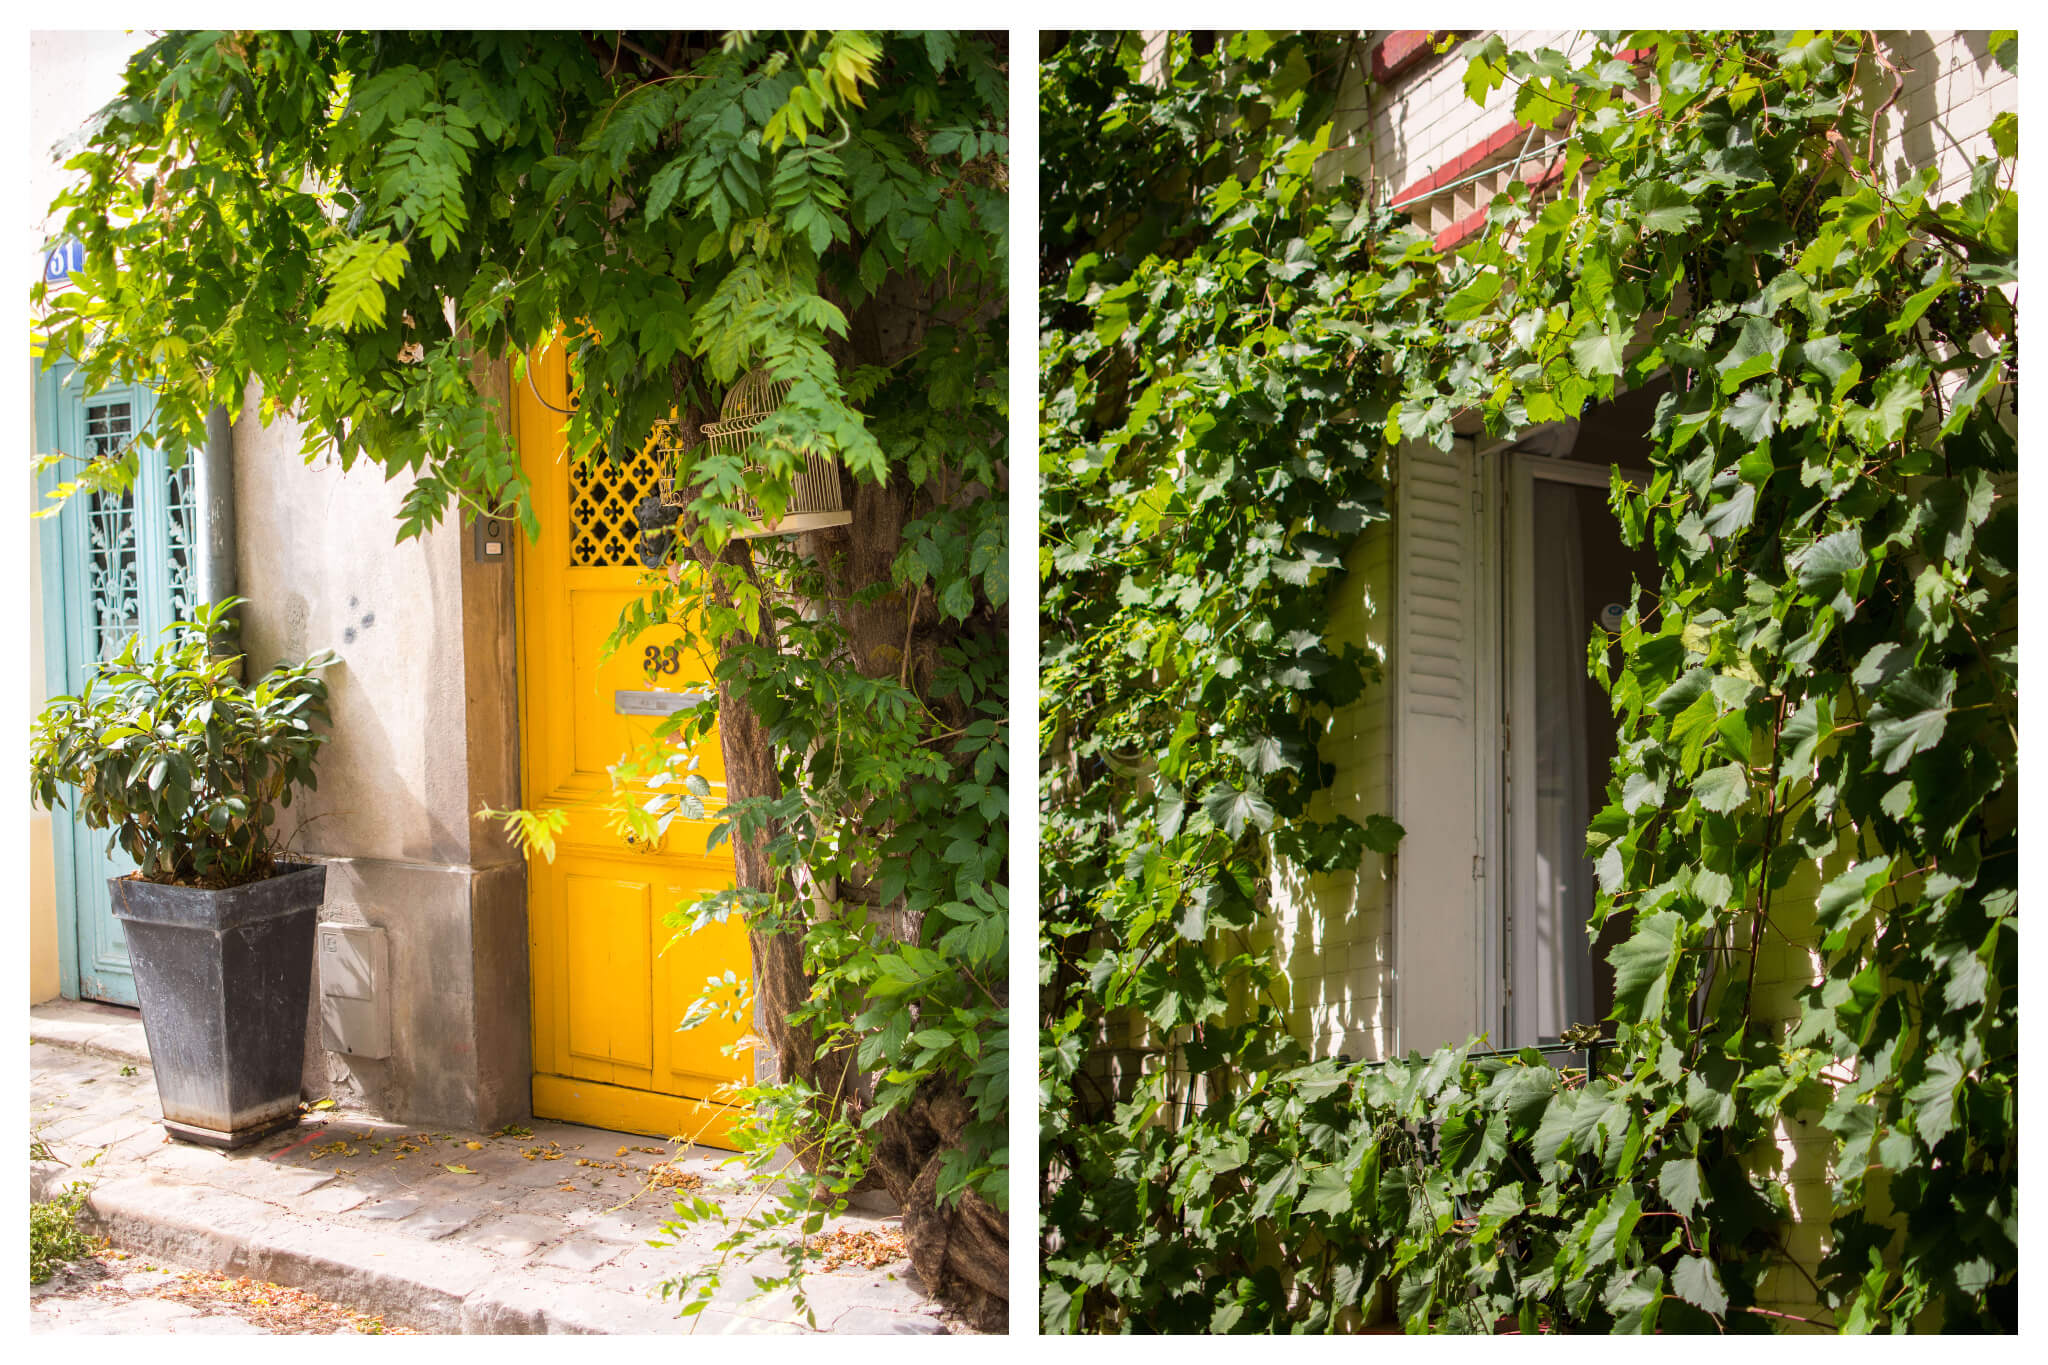 On left: A bright, mustard-yellow door can't hide behind the drooping vines on rue des Thermopyles in Paris' 14th arrondissement. On right: An open window sits open on a sunny day, light shining brightly on the abundance of leaves surrounding it.